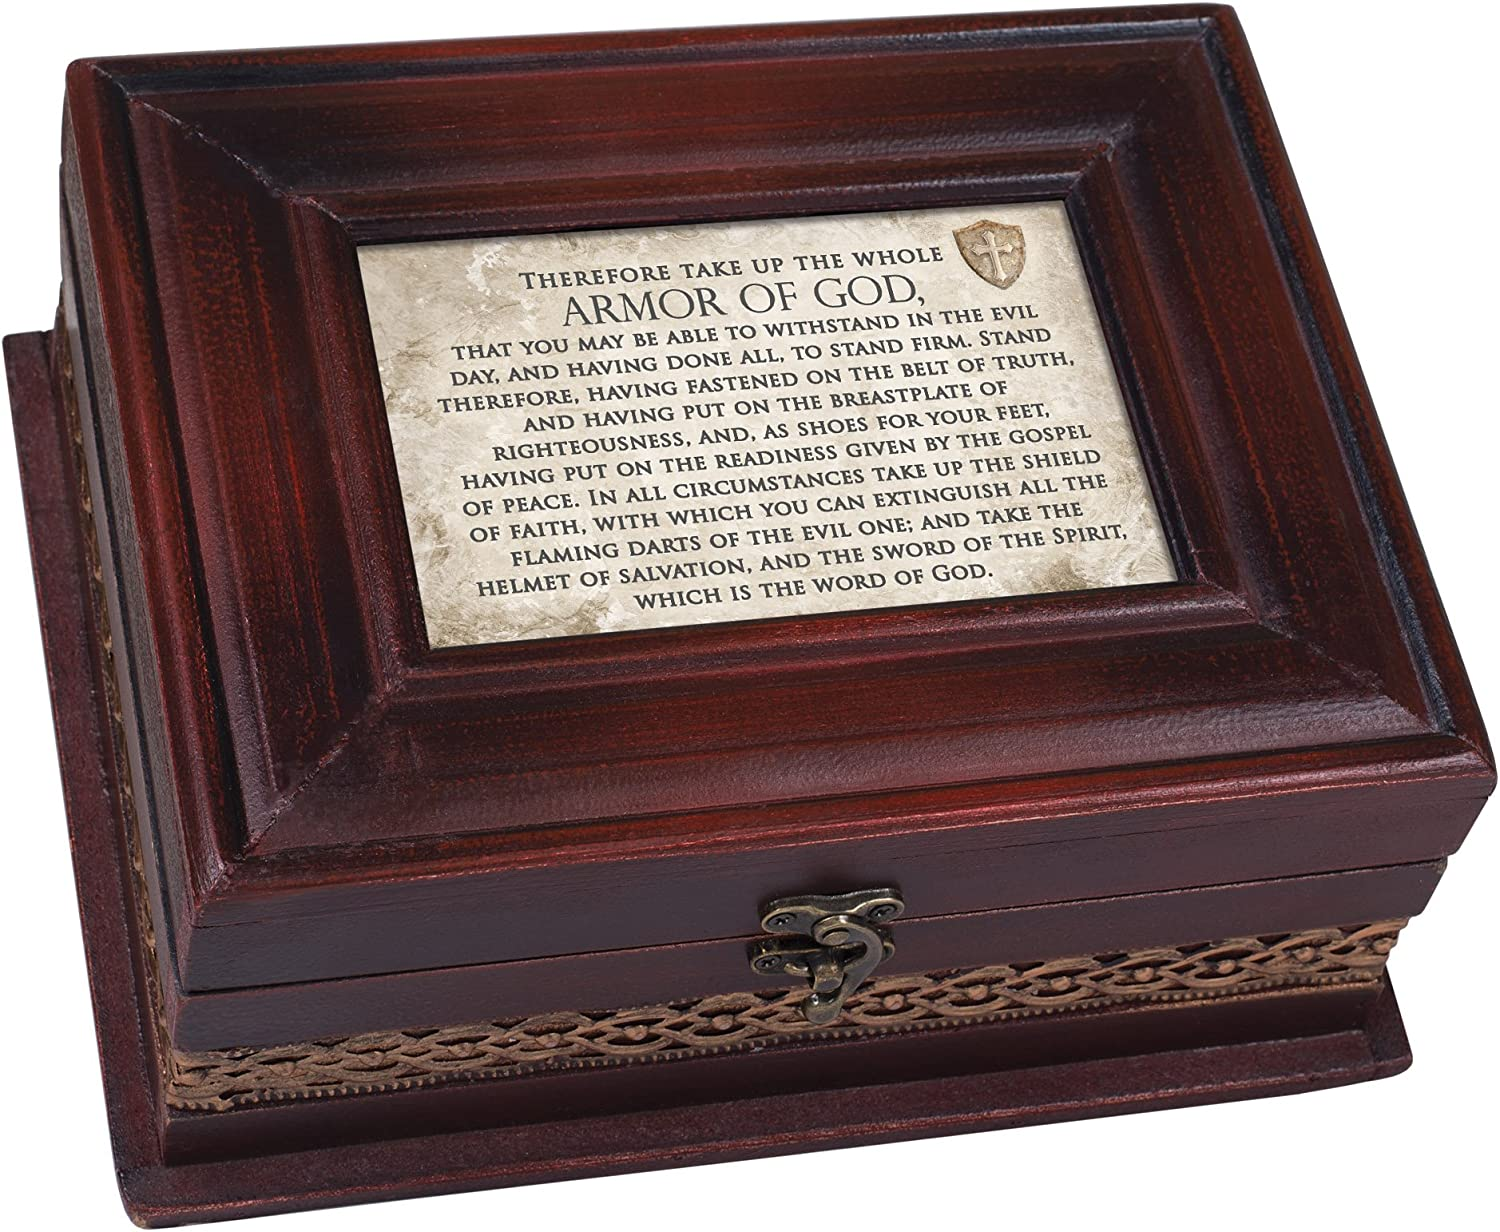 Vintage Hand-Made OldWorld Wood Book Trough Solid and Beautiful!